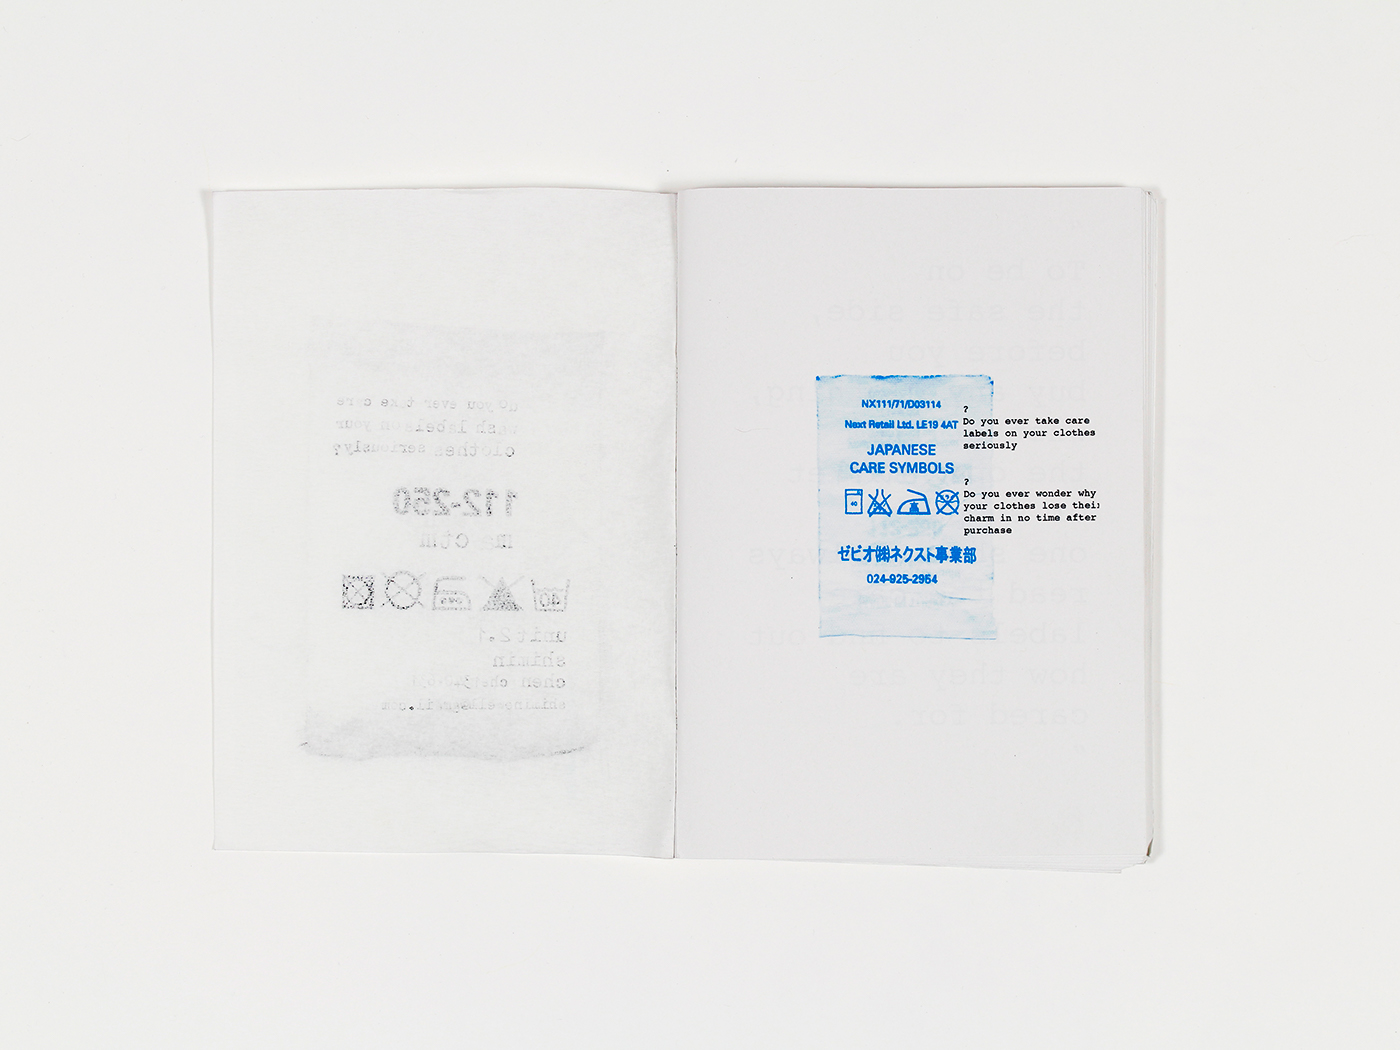 Zine / Wash Label and Fabric on Behance